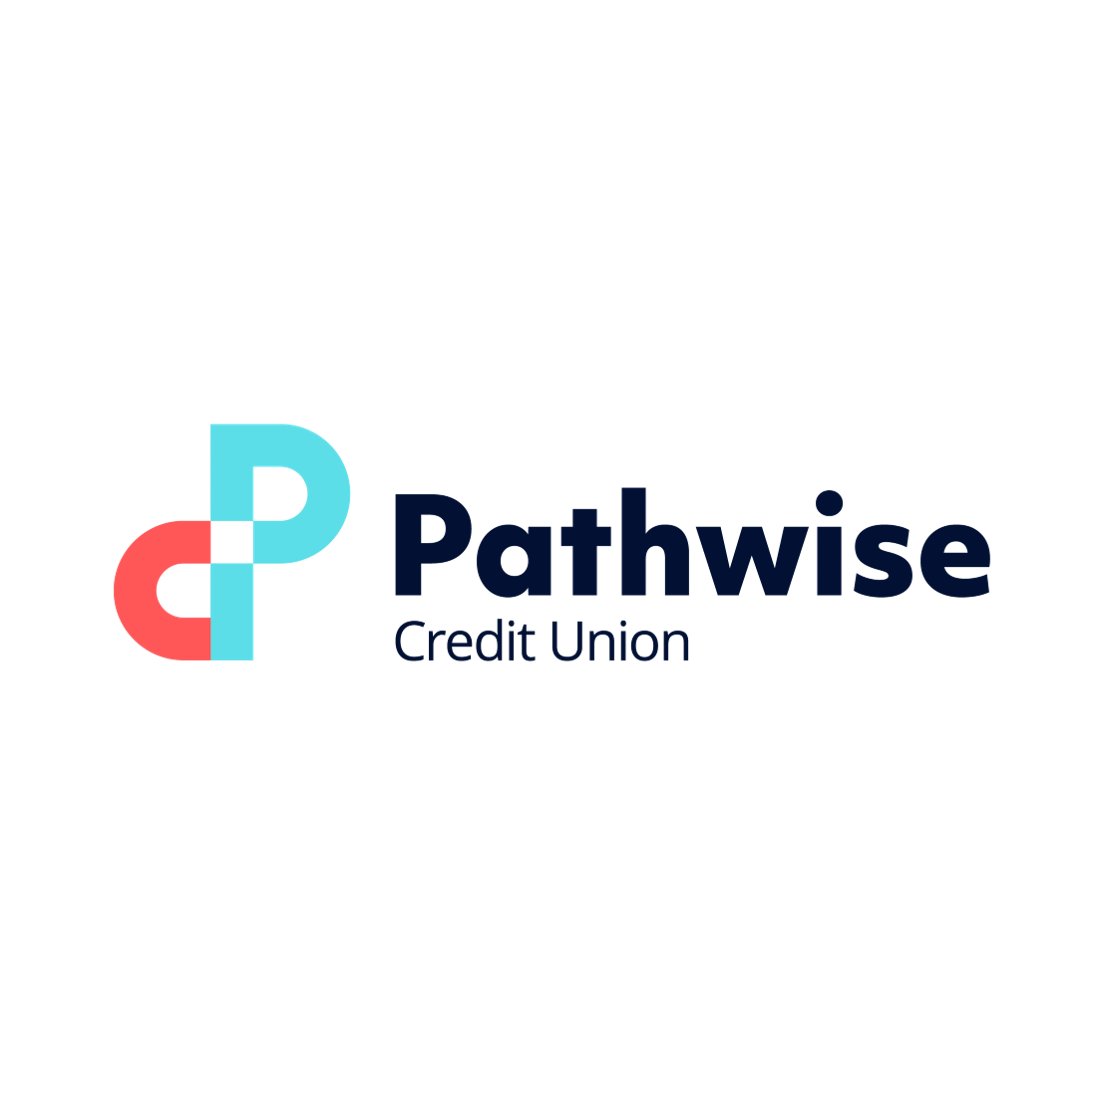 Pathwise Credit Union